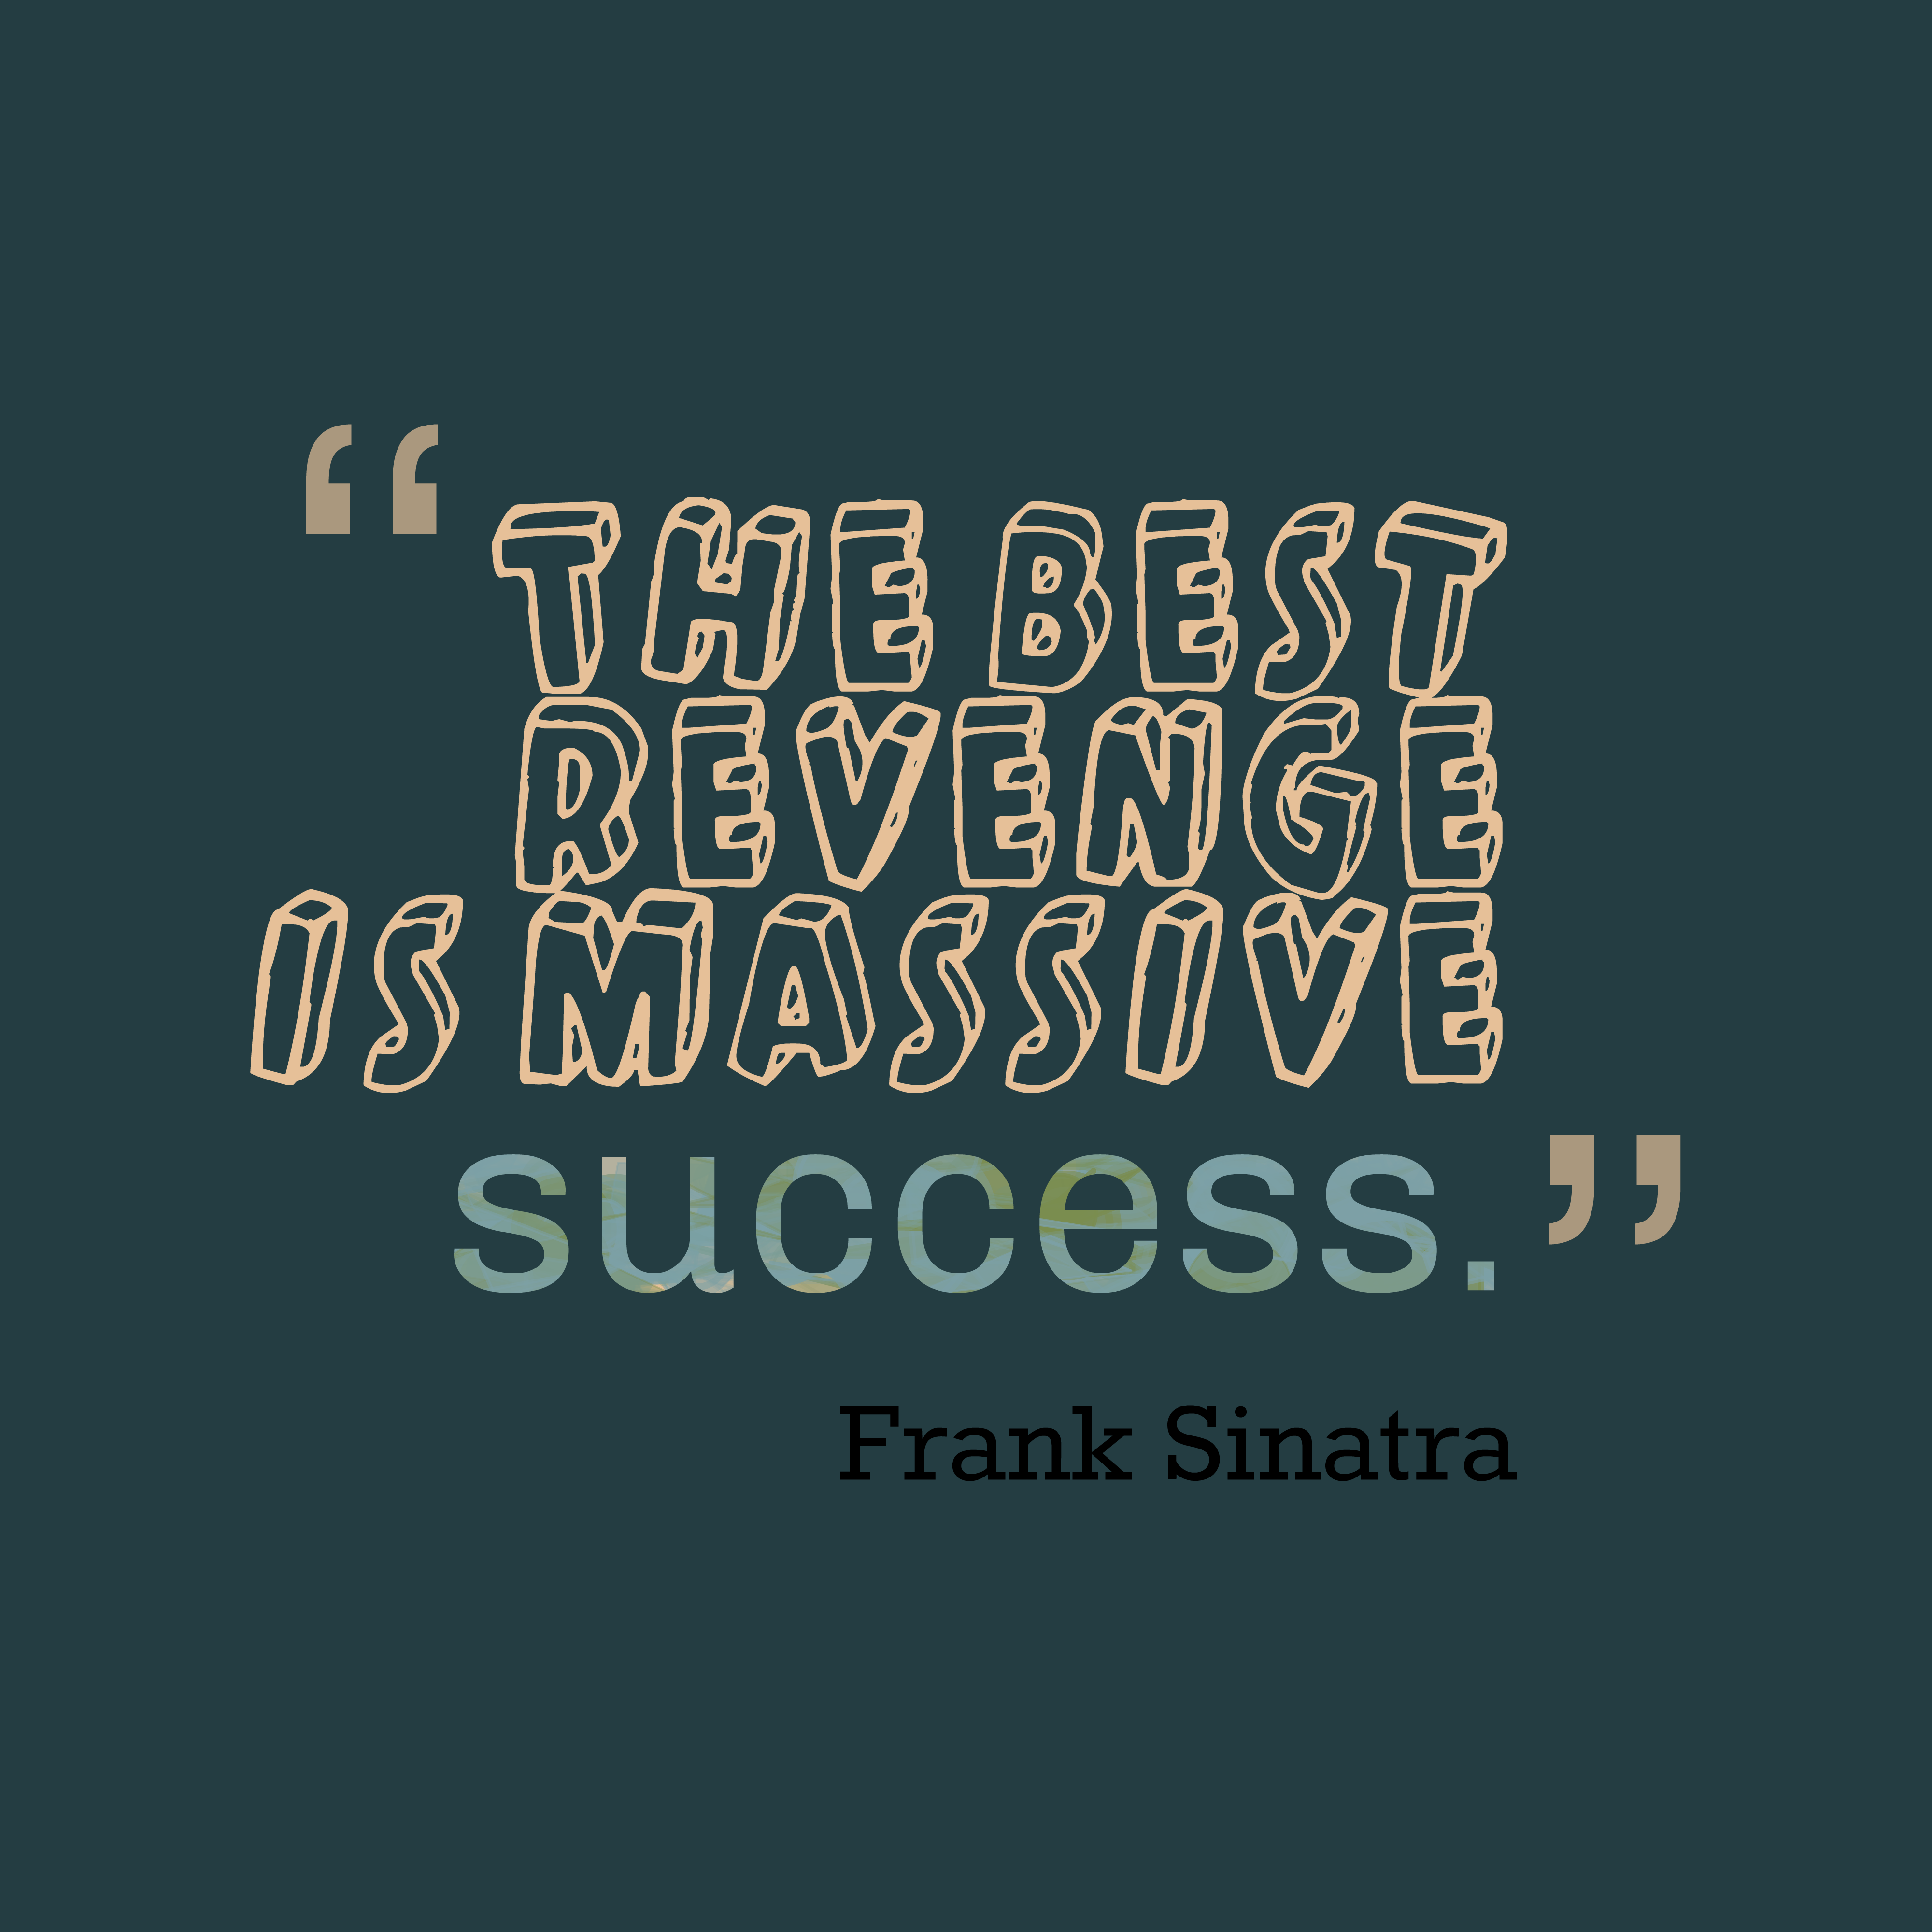 Success Quotes Facebook Covers: Get High Resolution Using Text From Frank Sinatra Quote